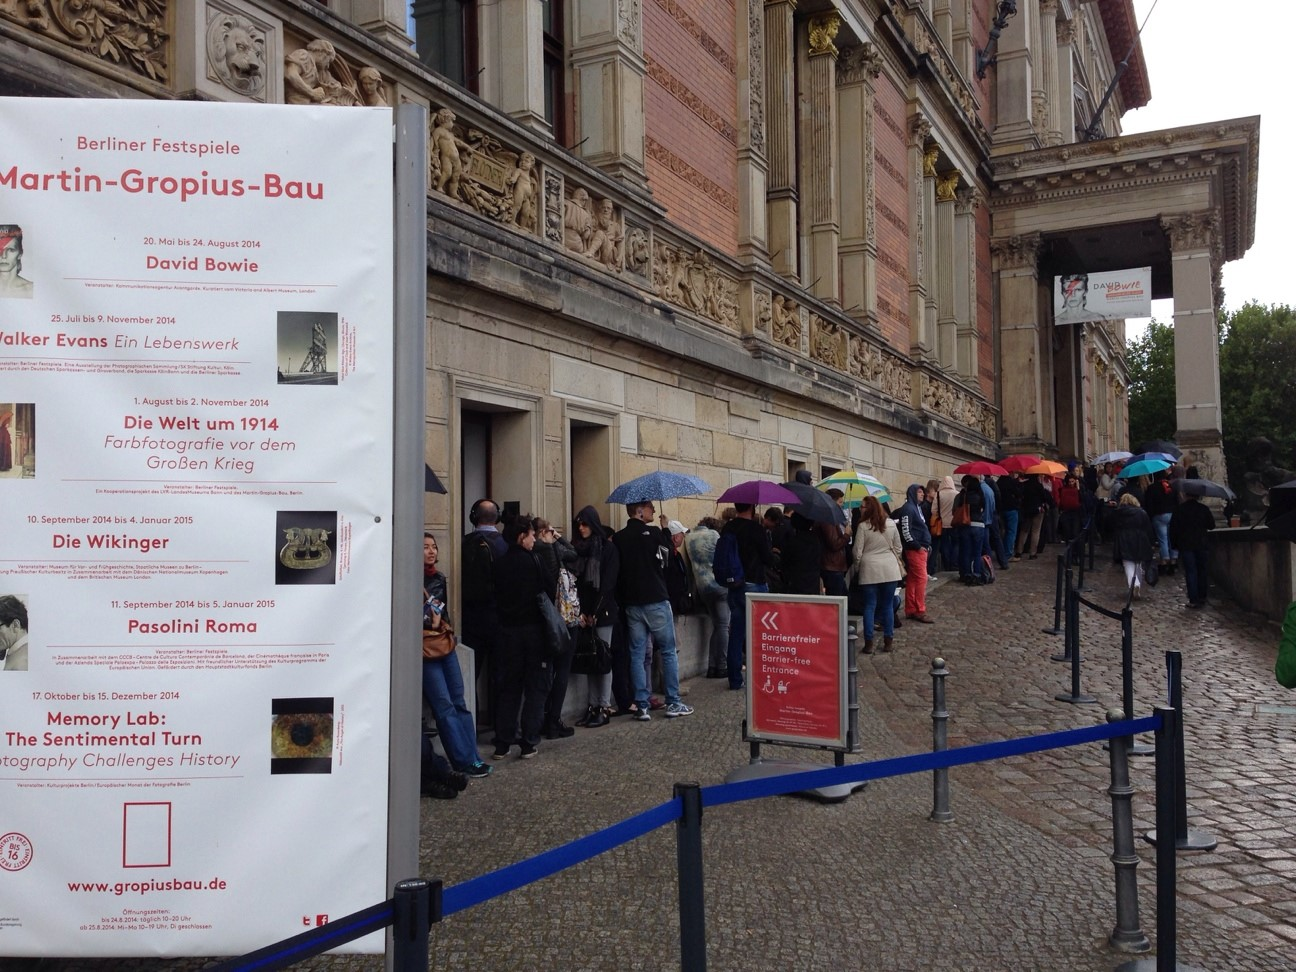 Queues at the Martin Gropius Bau to see the David Bowie exhibition.